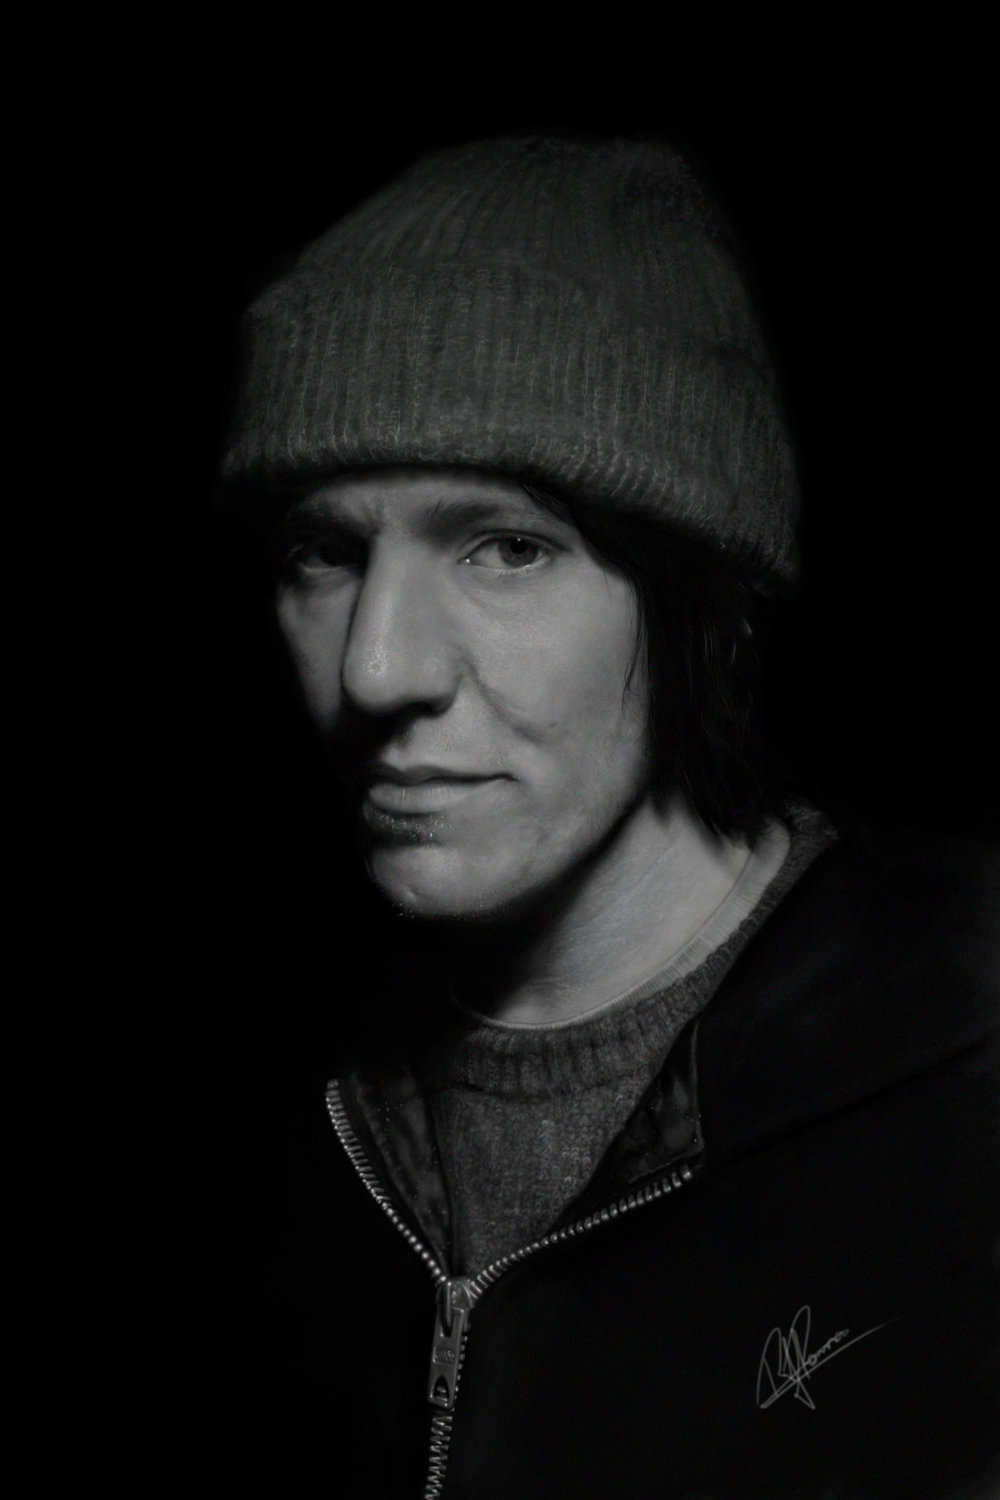 elliott_smith___speed_paint_by_rodrigoelven1.jpg